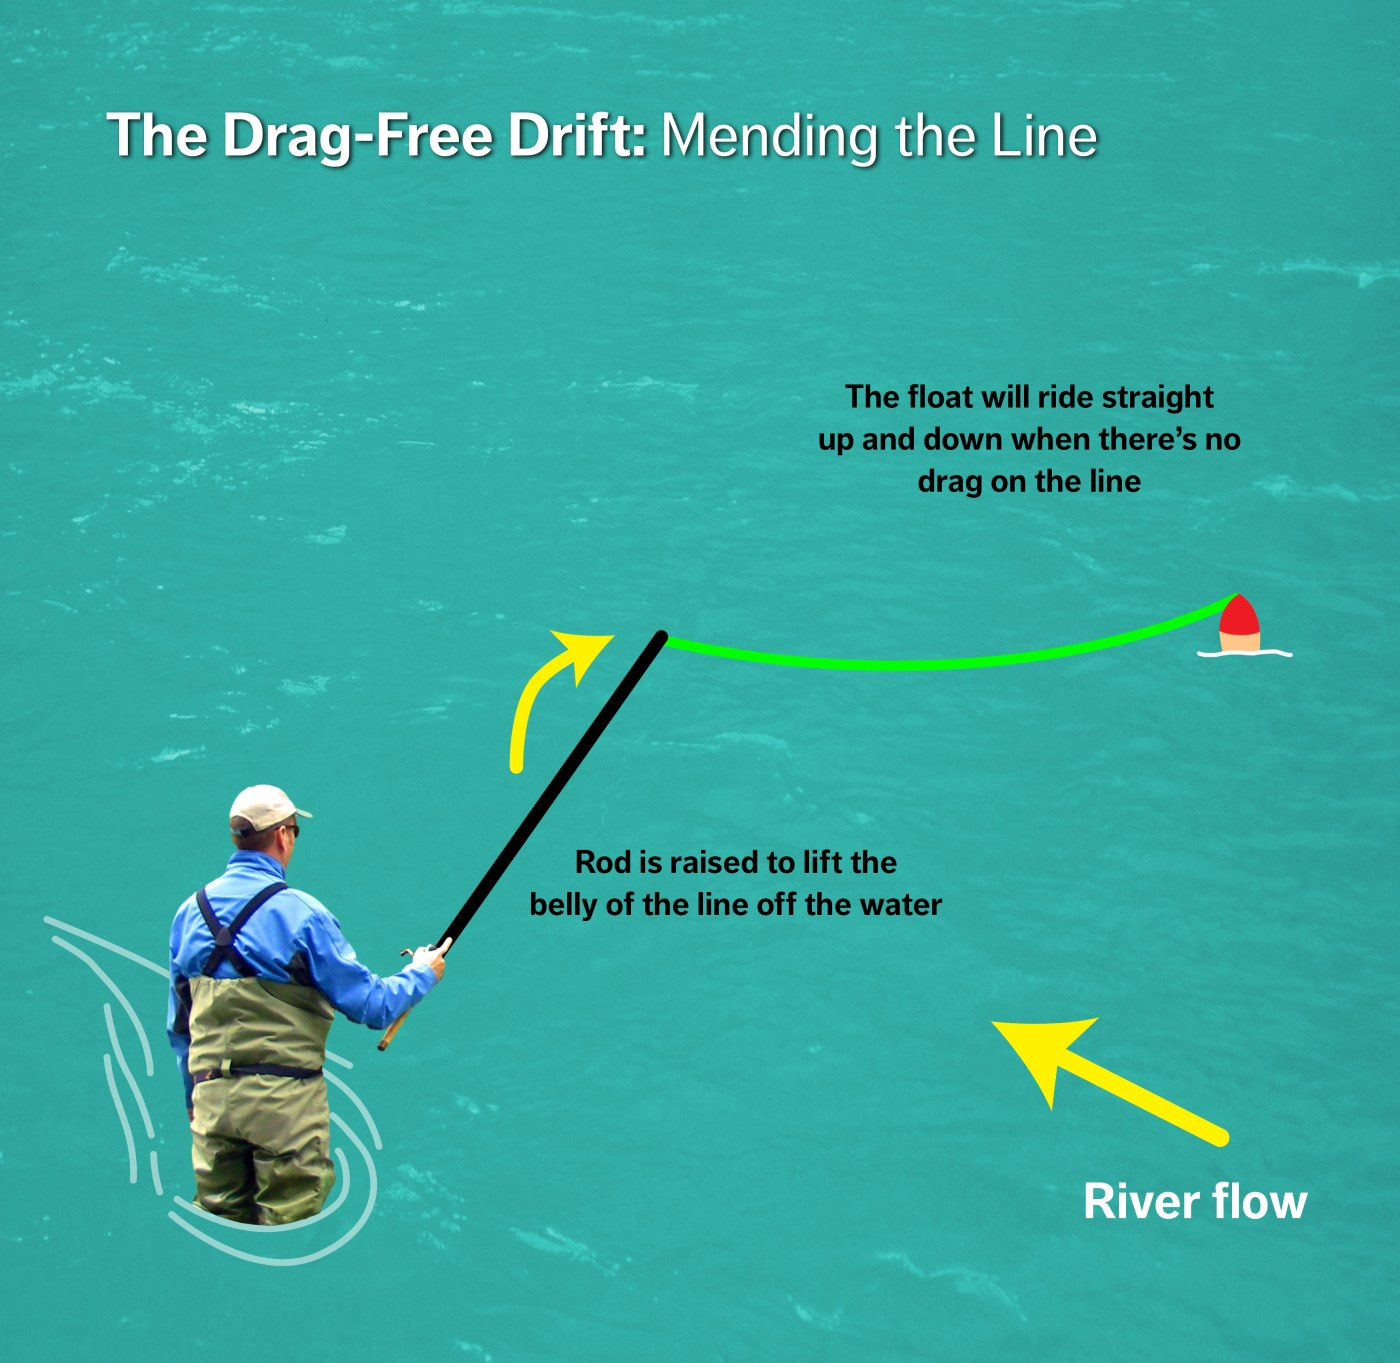 Drag Free drift - Mending the line diagram